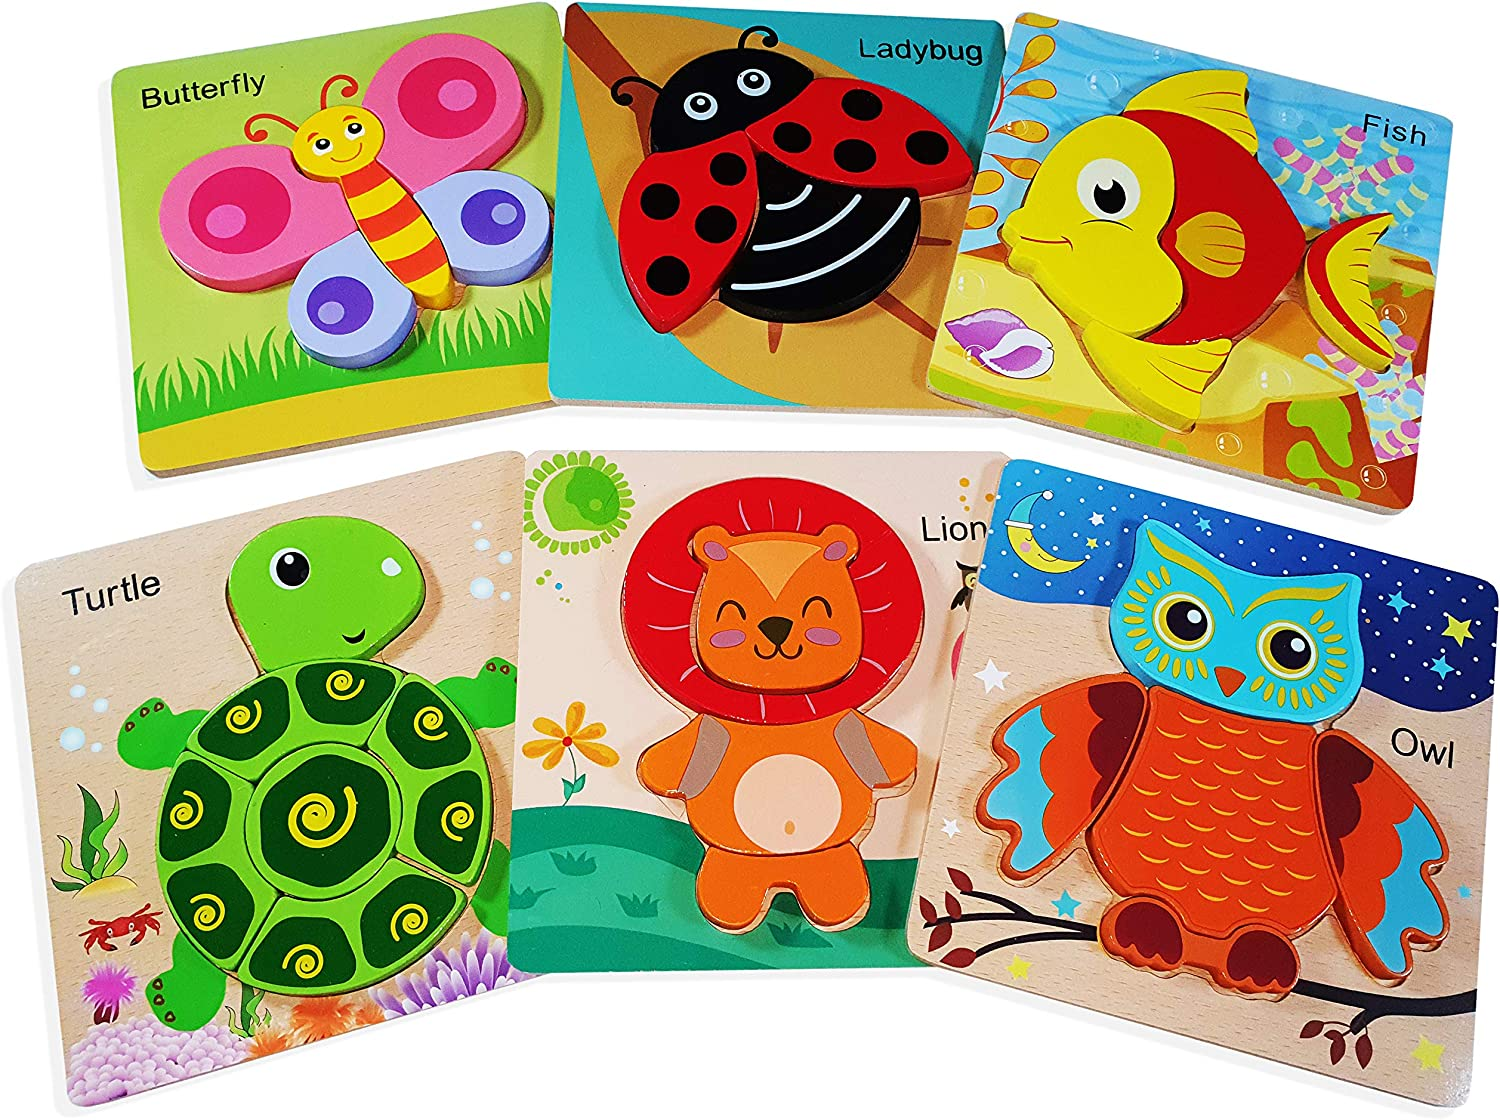 Level-up Toys Wooden Jigsaw Puzzles for Toddlers (6 Pack animal puzzles) + Storage bag